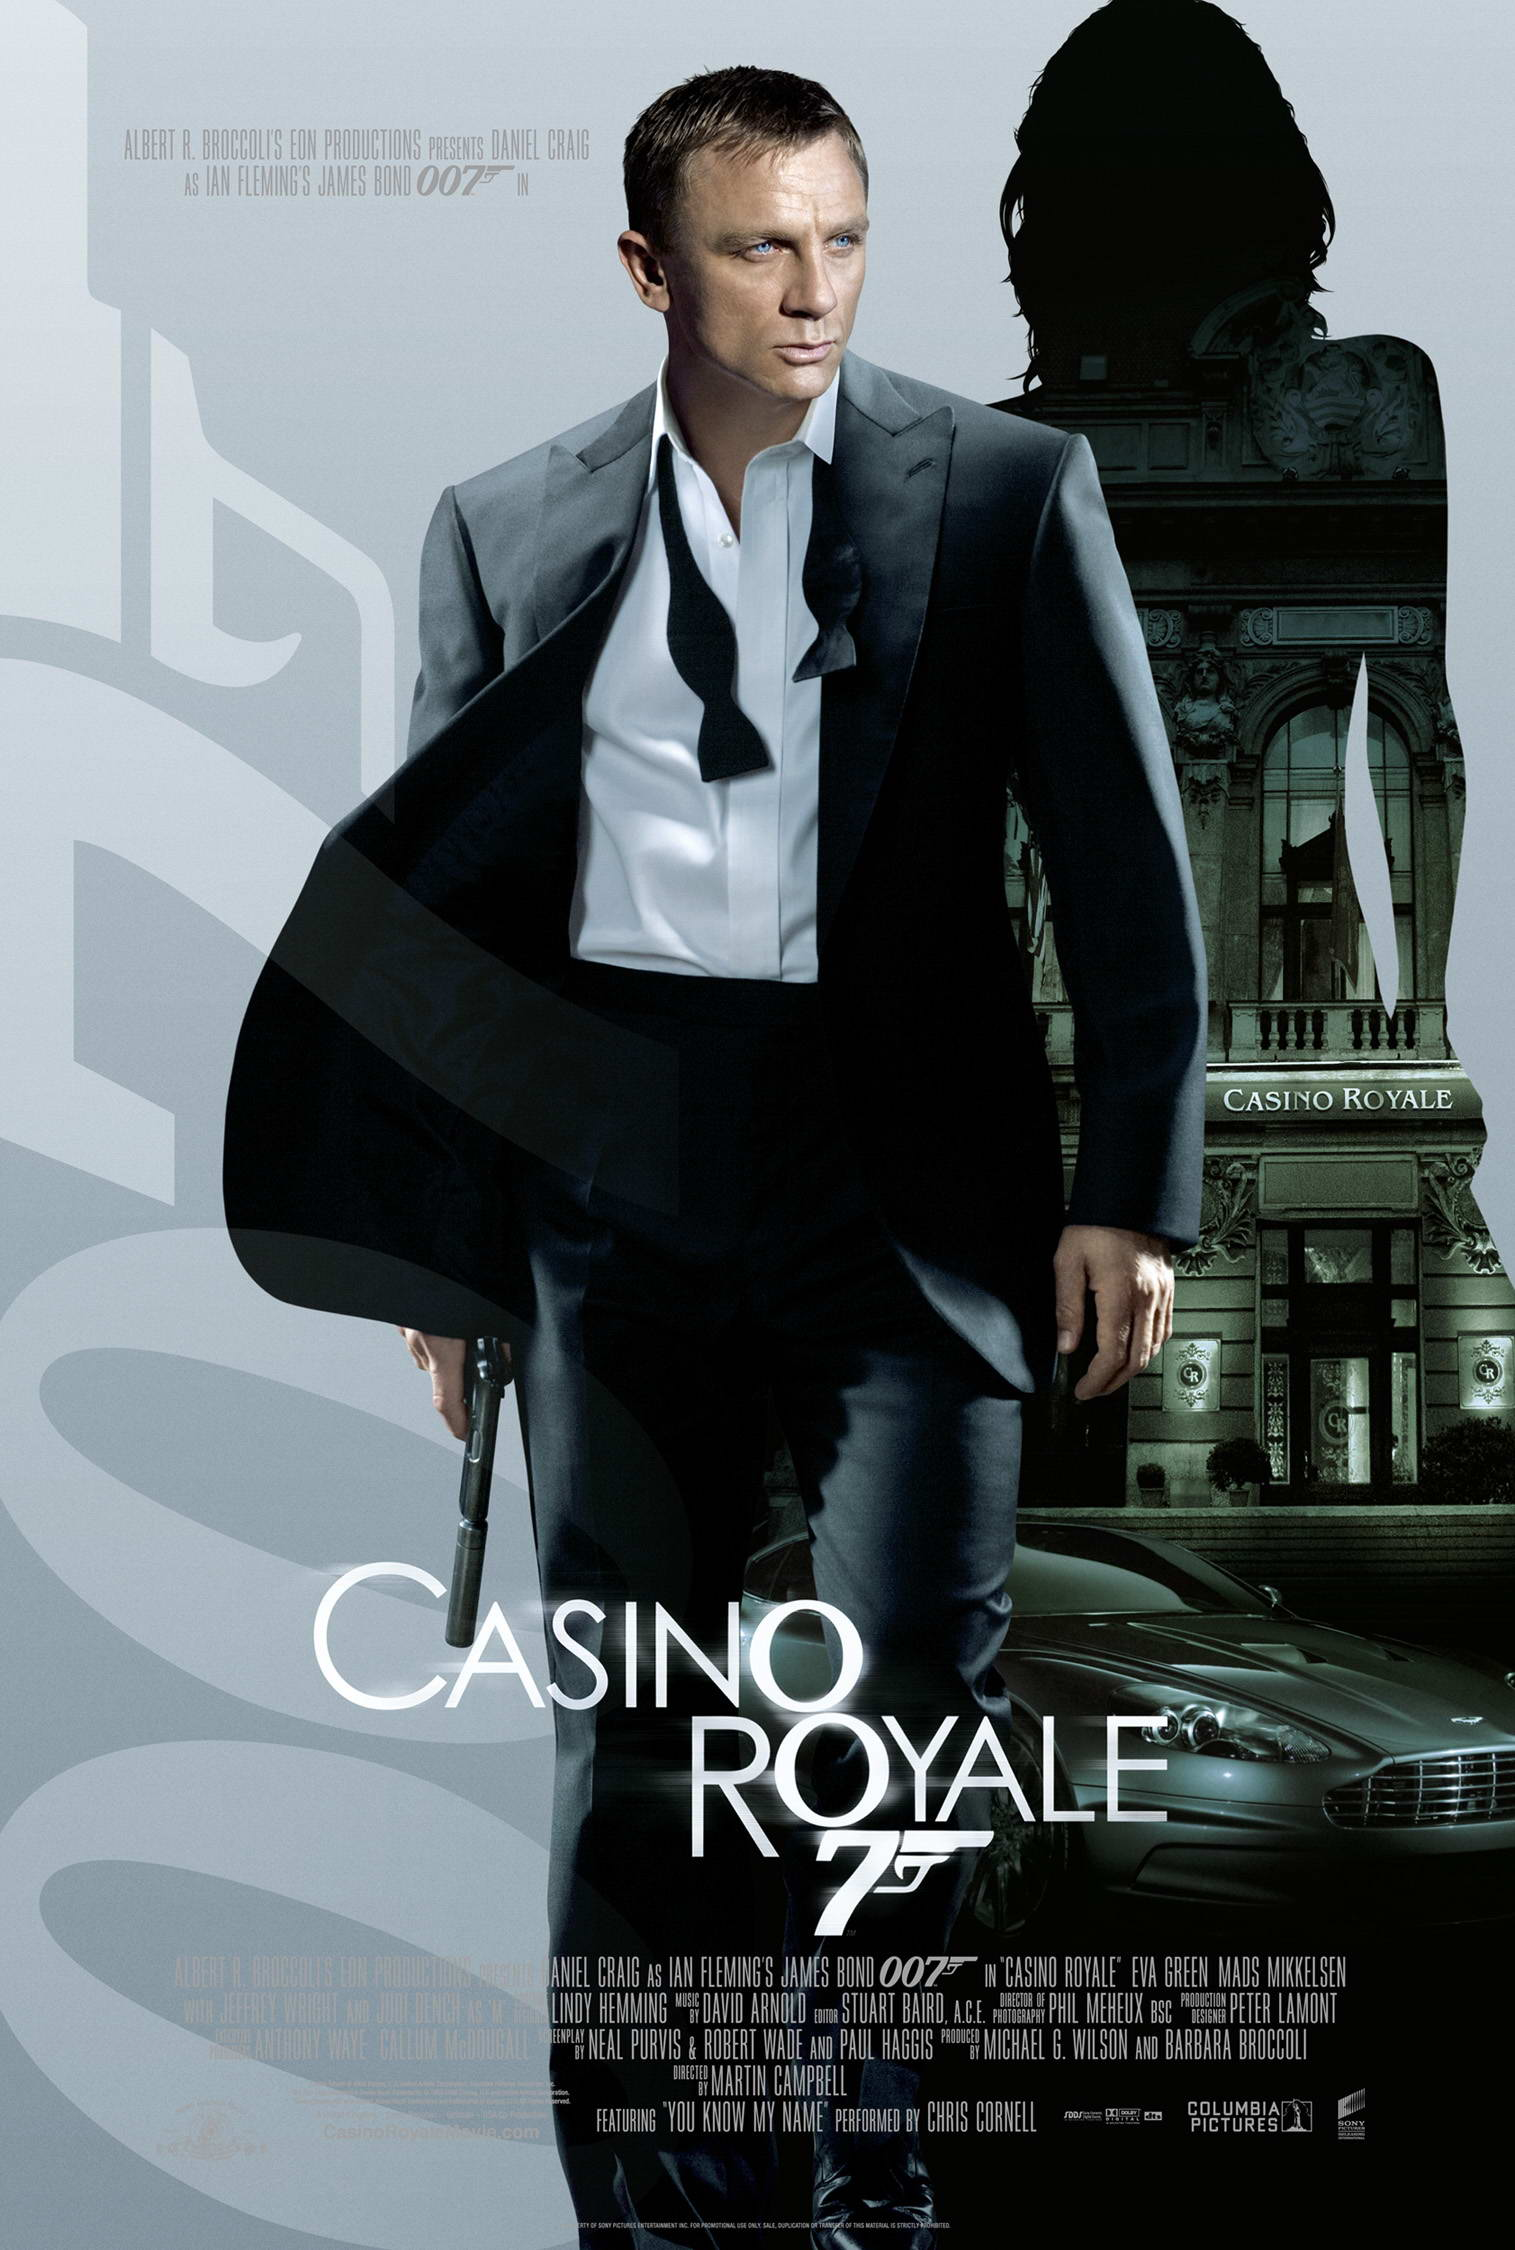 casino royale 2006 movie poster